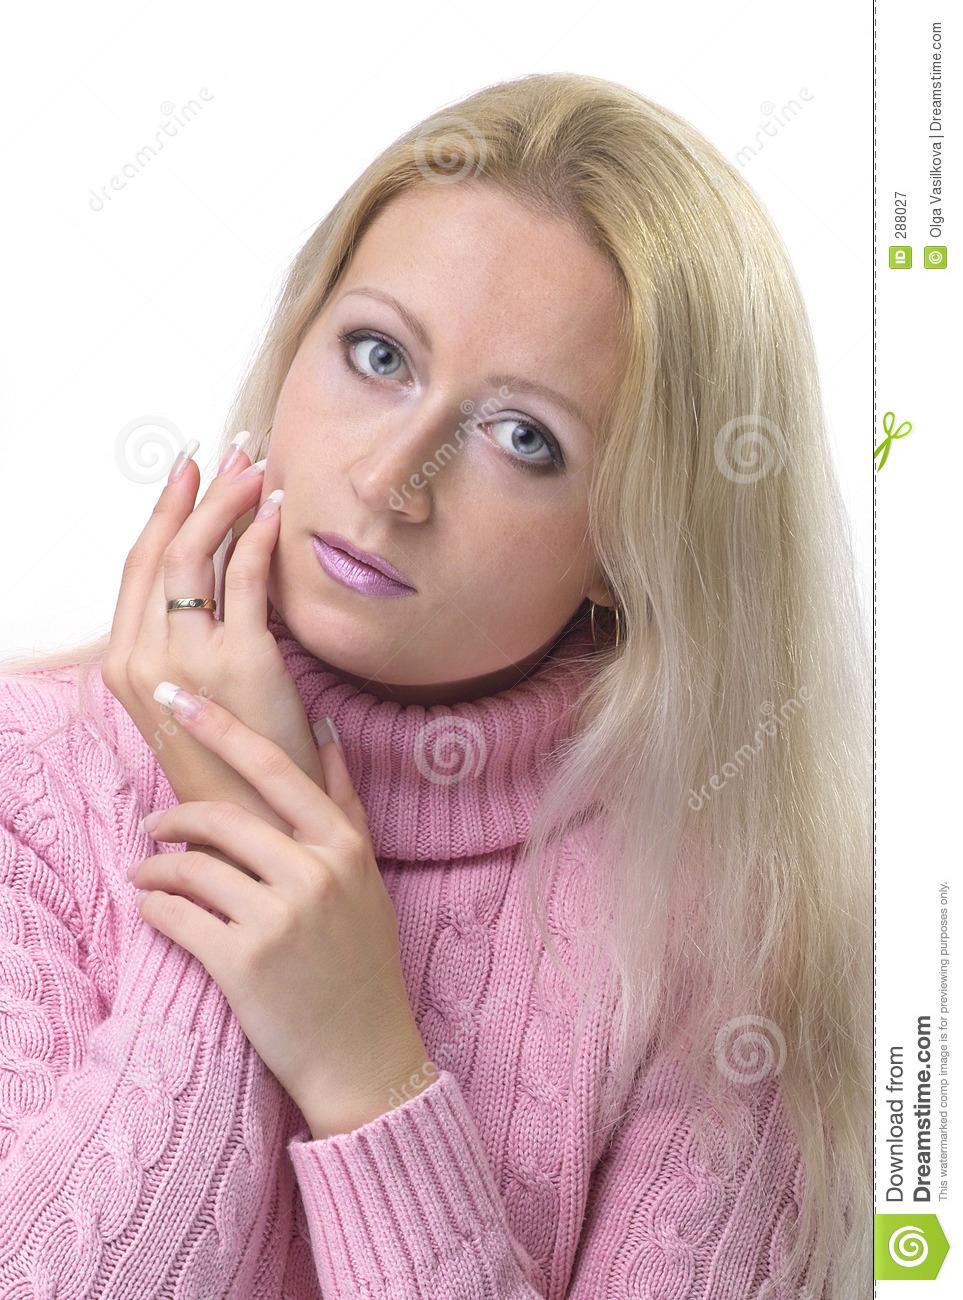 Girl With French Manicure Stock Image Image Of Beauty